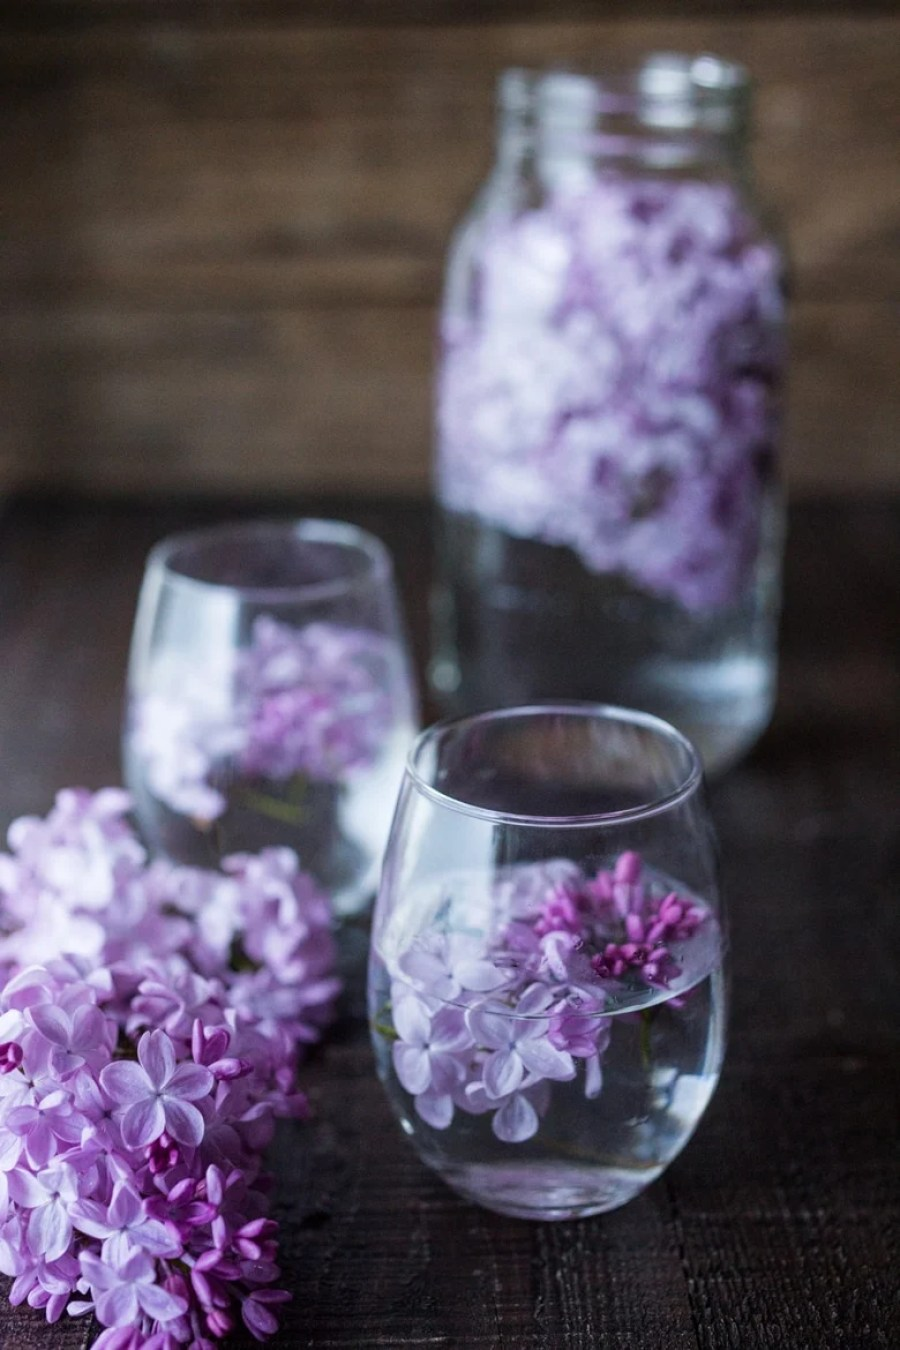 Lilac Water- water infused with lilac blossoms calms and restores the spirit. Perfect for weddings or celebrations, a lovely way to celebrate spring. | www.feastingathome.com #lilacwater